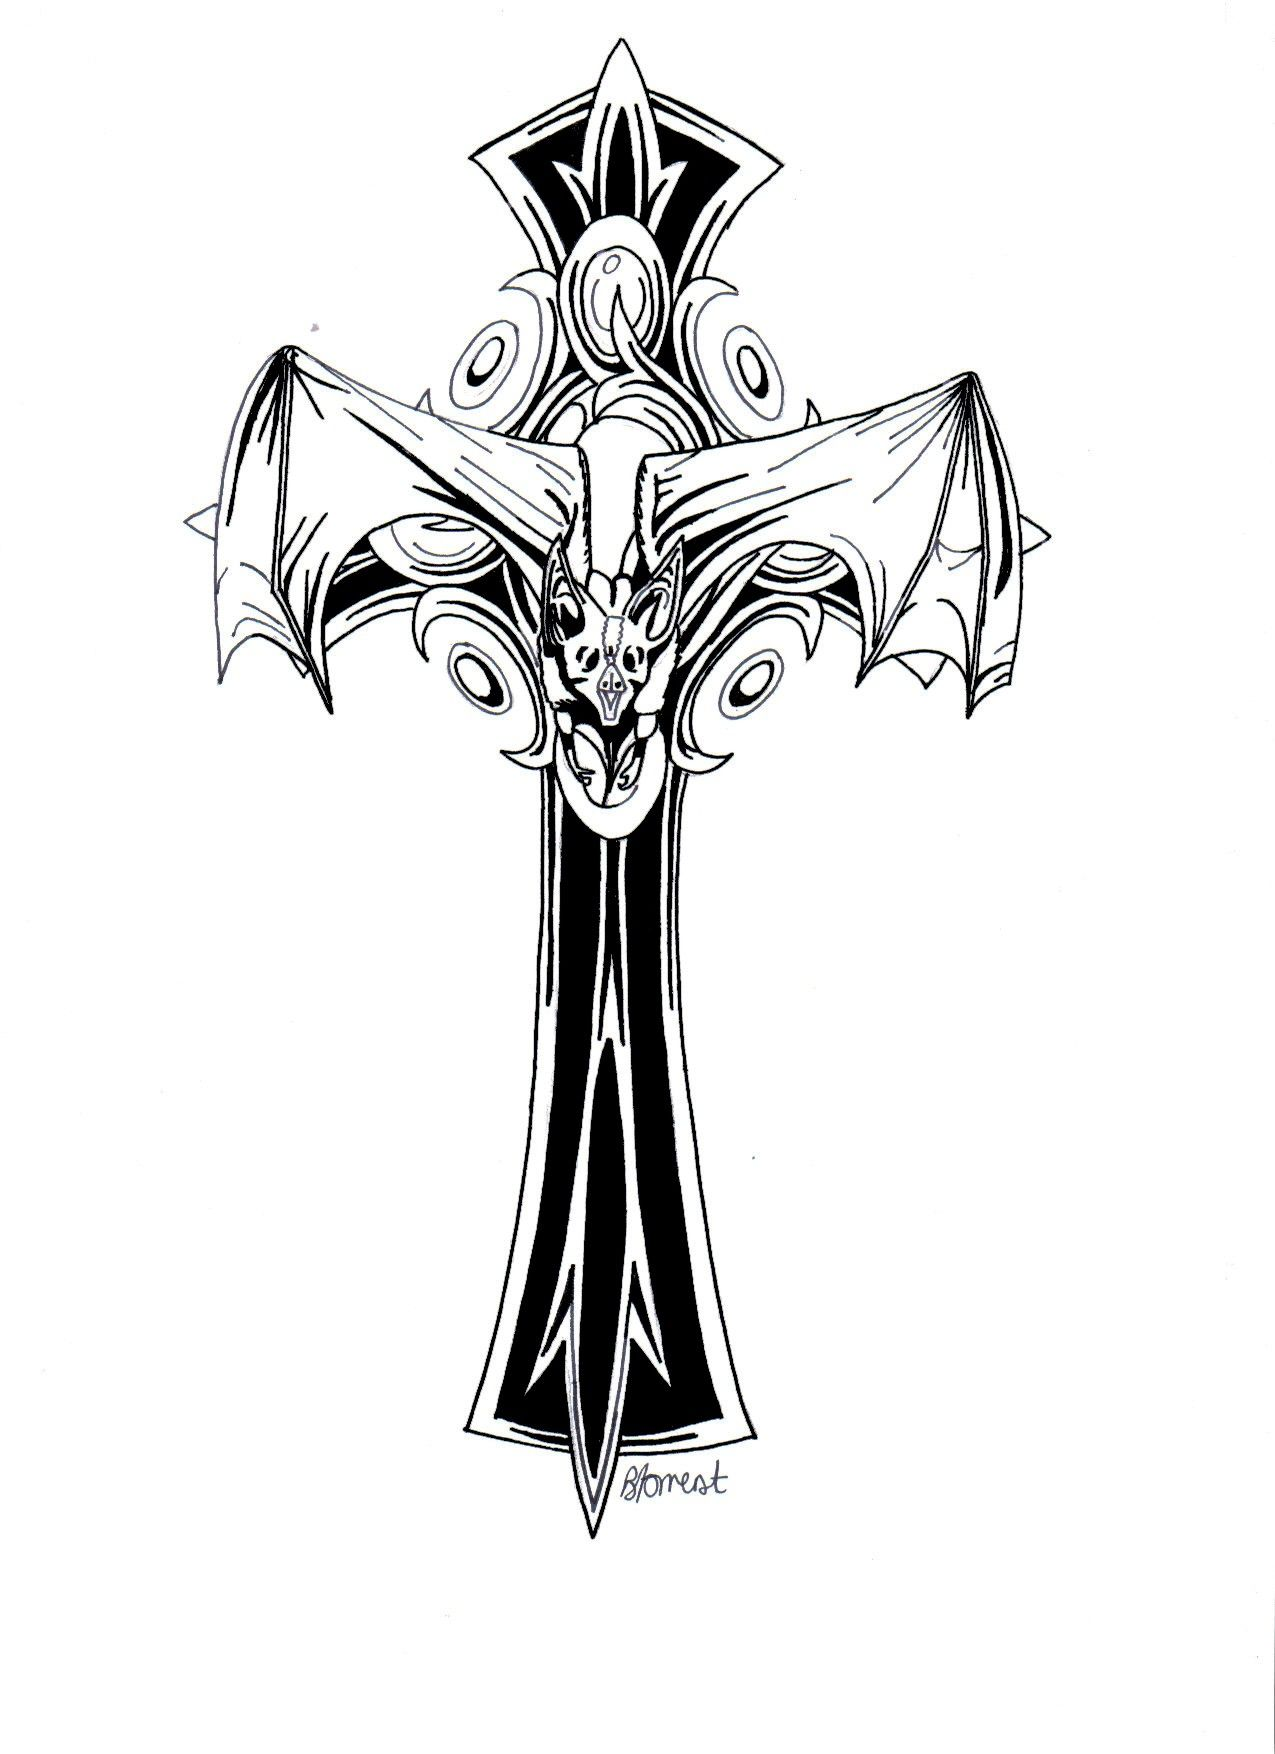 Gothic Cross By Bevf On Deviantart